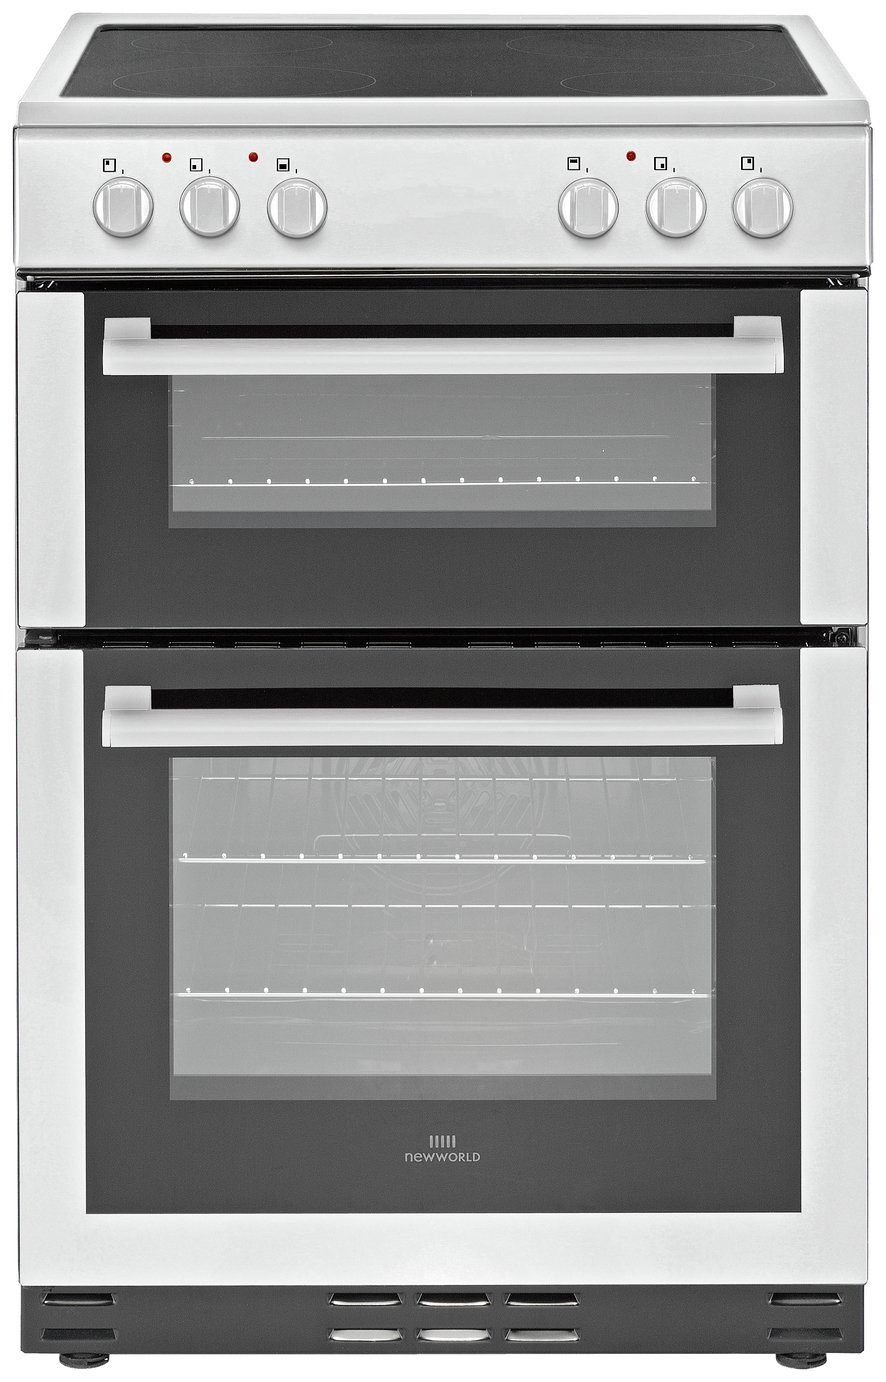 New World - 60EDOC Electric Cooker - White from New World